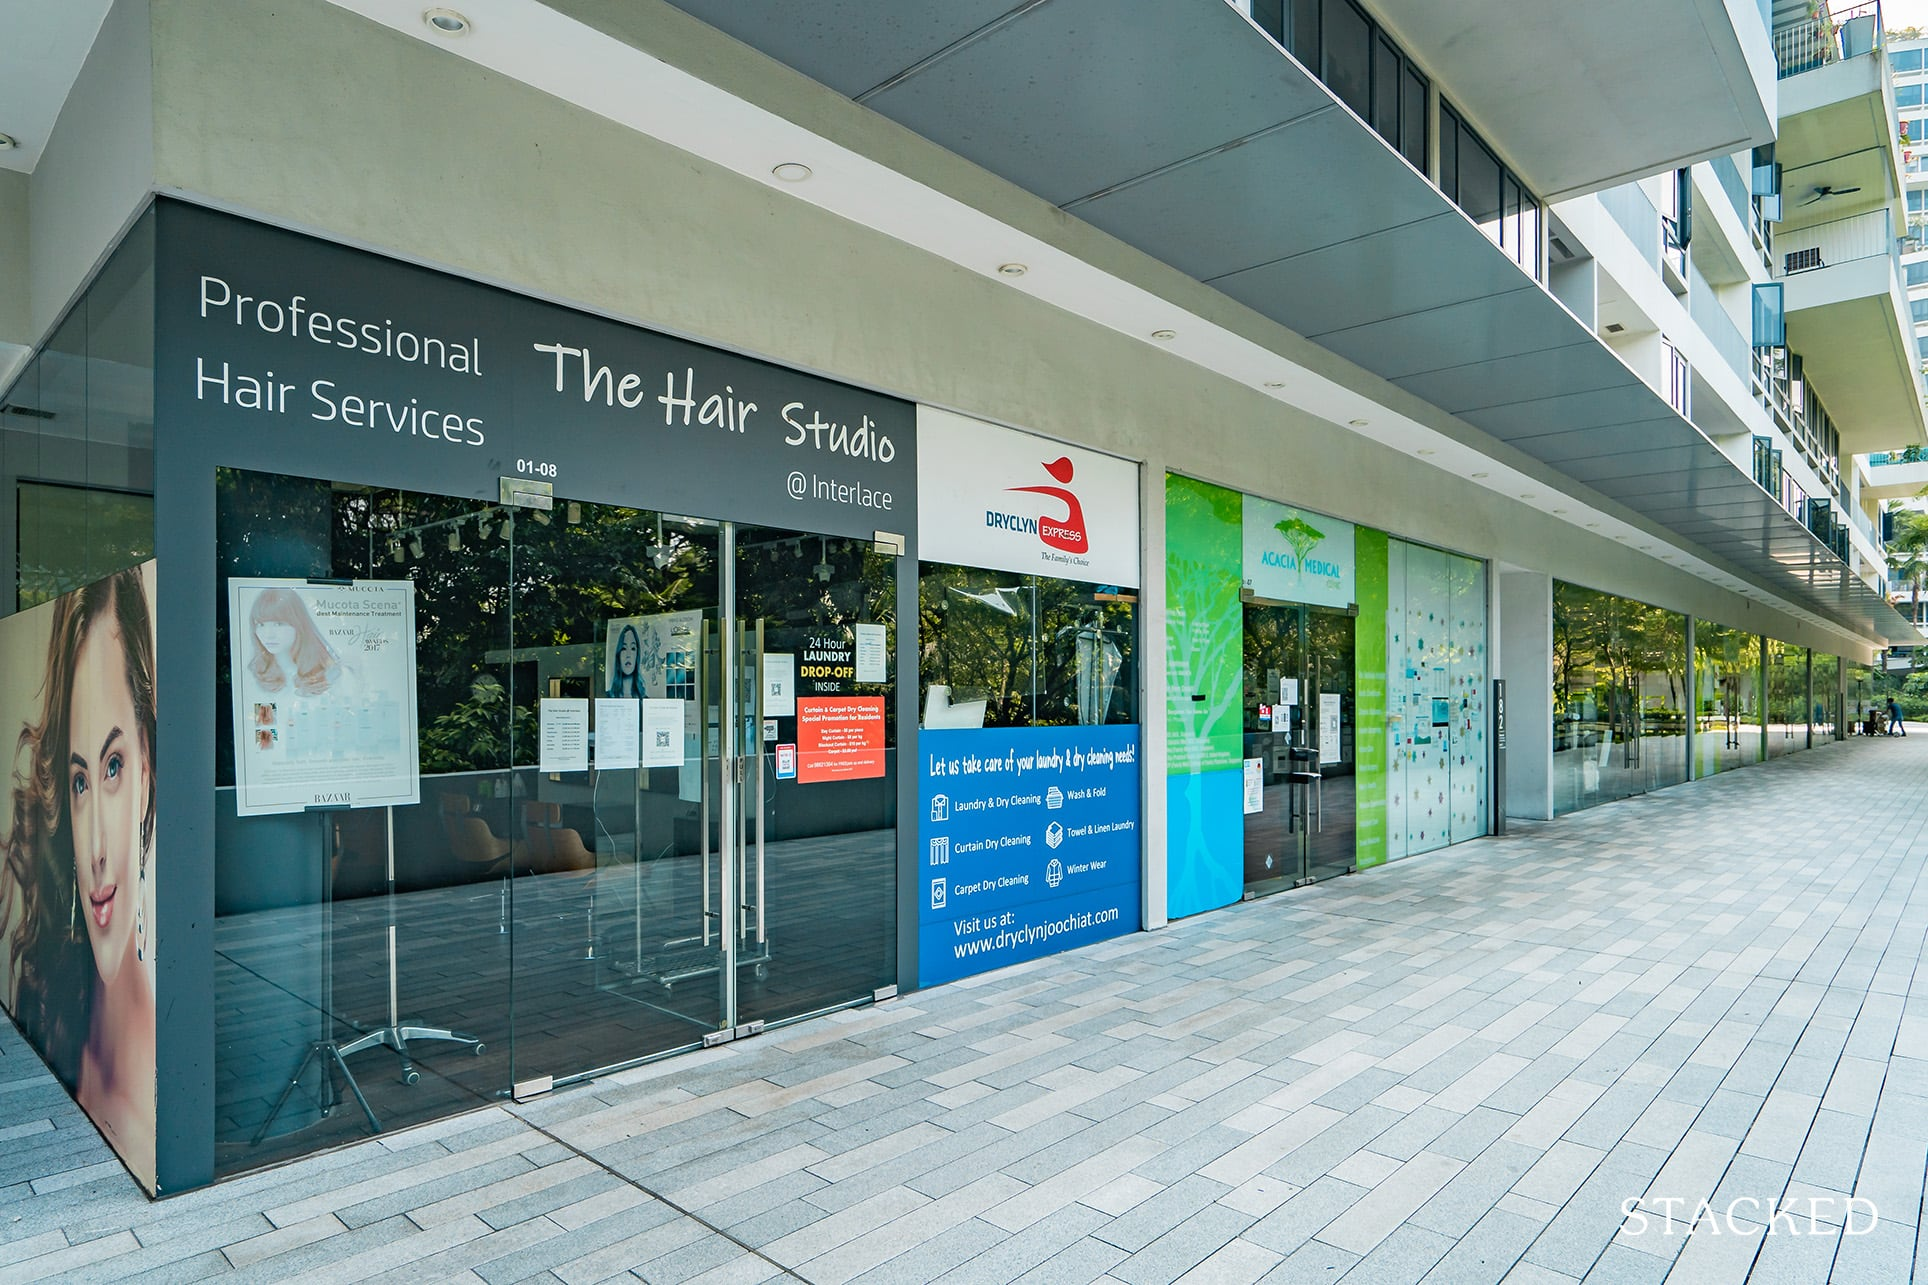 the interlace shops